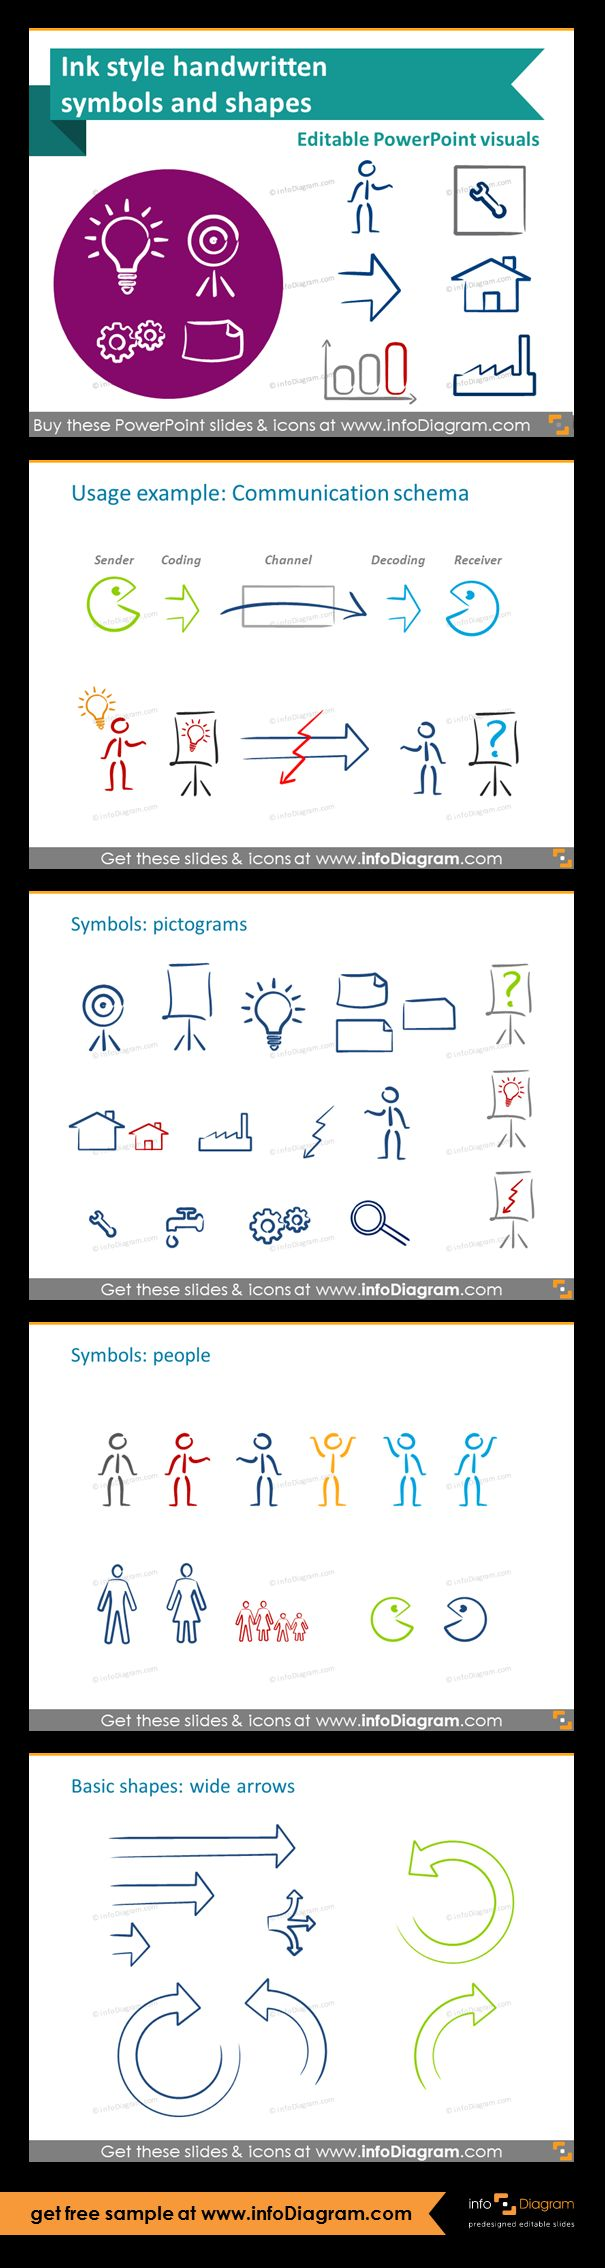 Editable graphical elements for PowerPoint - handwritten symbols and shapes in ink style.Usage diagram example - communication schema,; people icons, wide arrows shapes and various symbols. Use handwritten symbols to illustrate slides by adding pictograms.